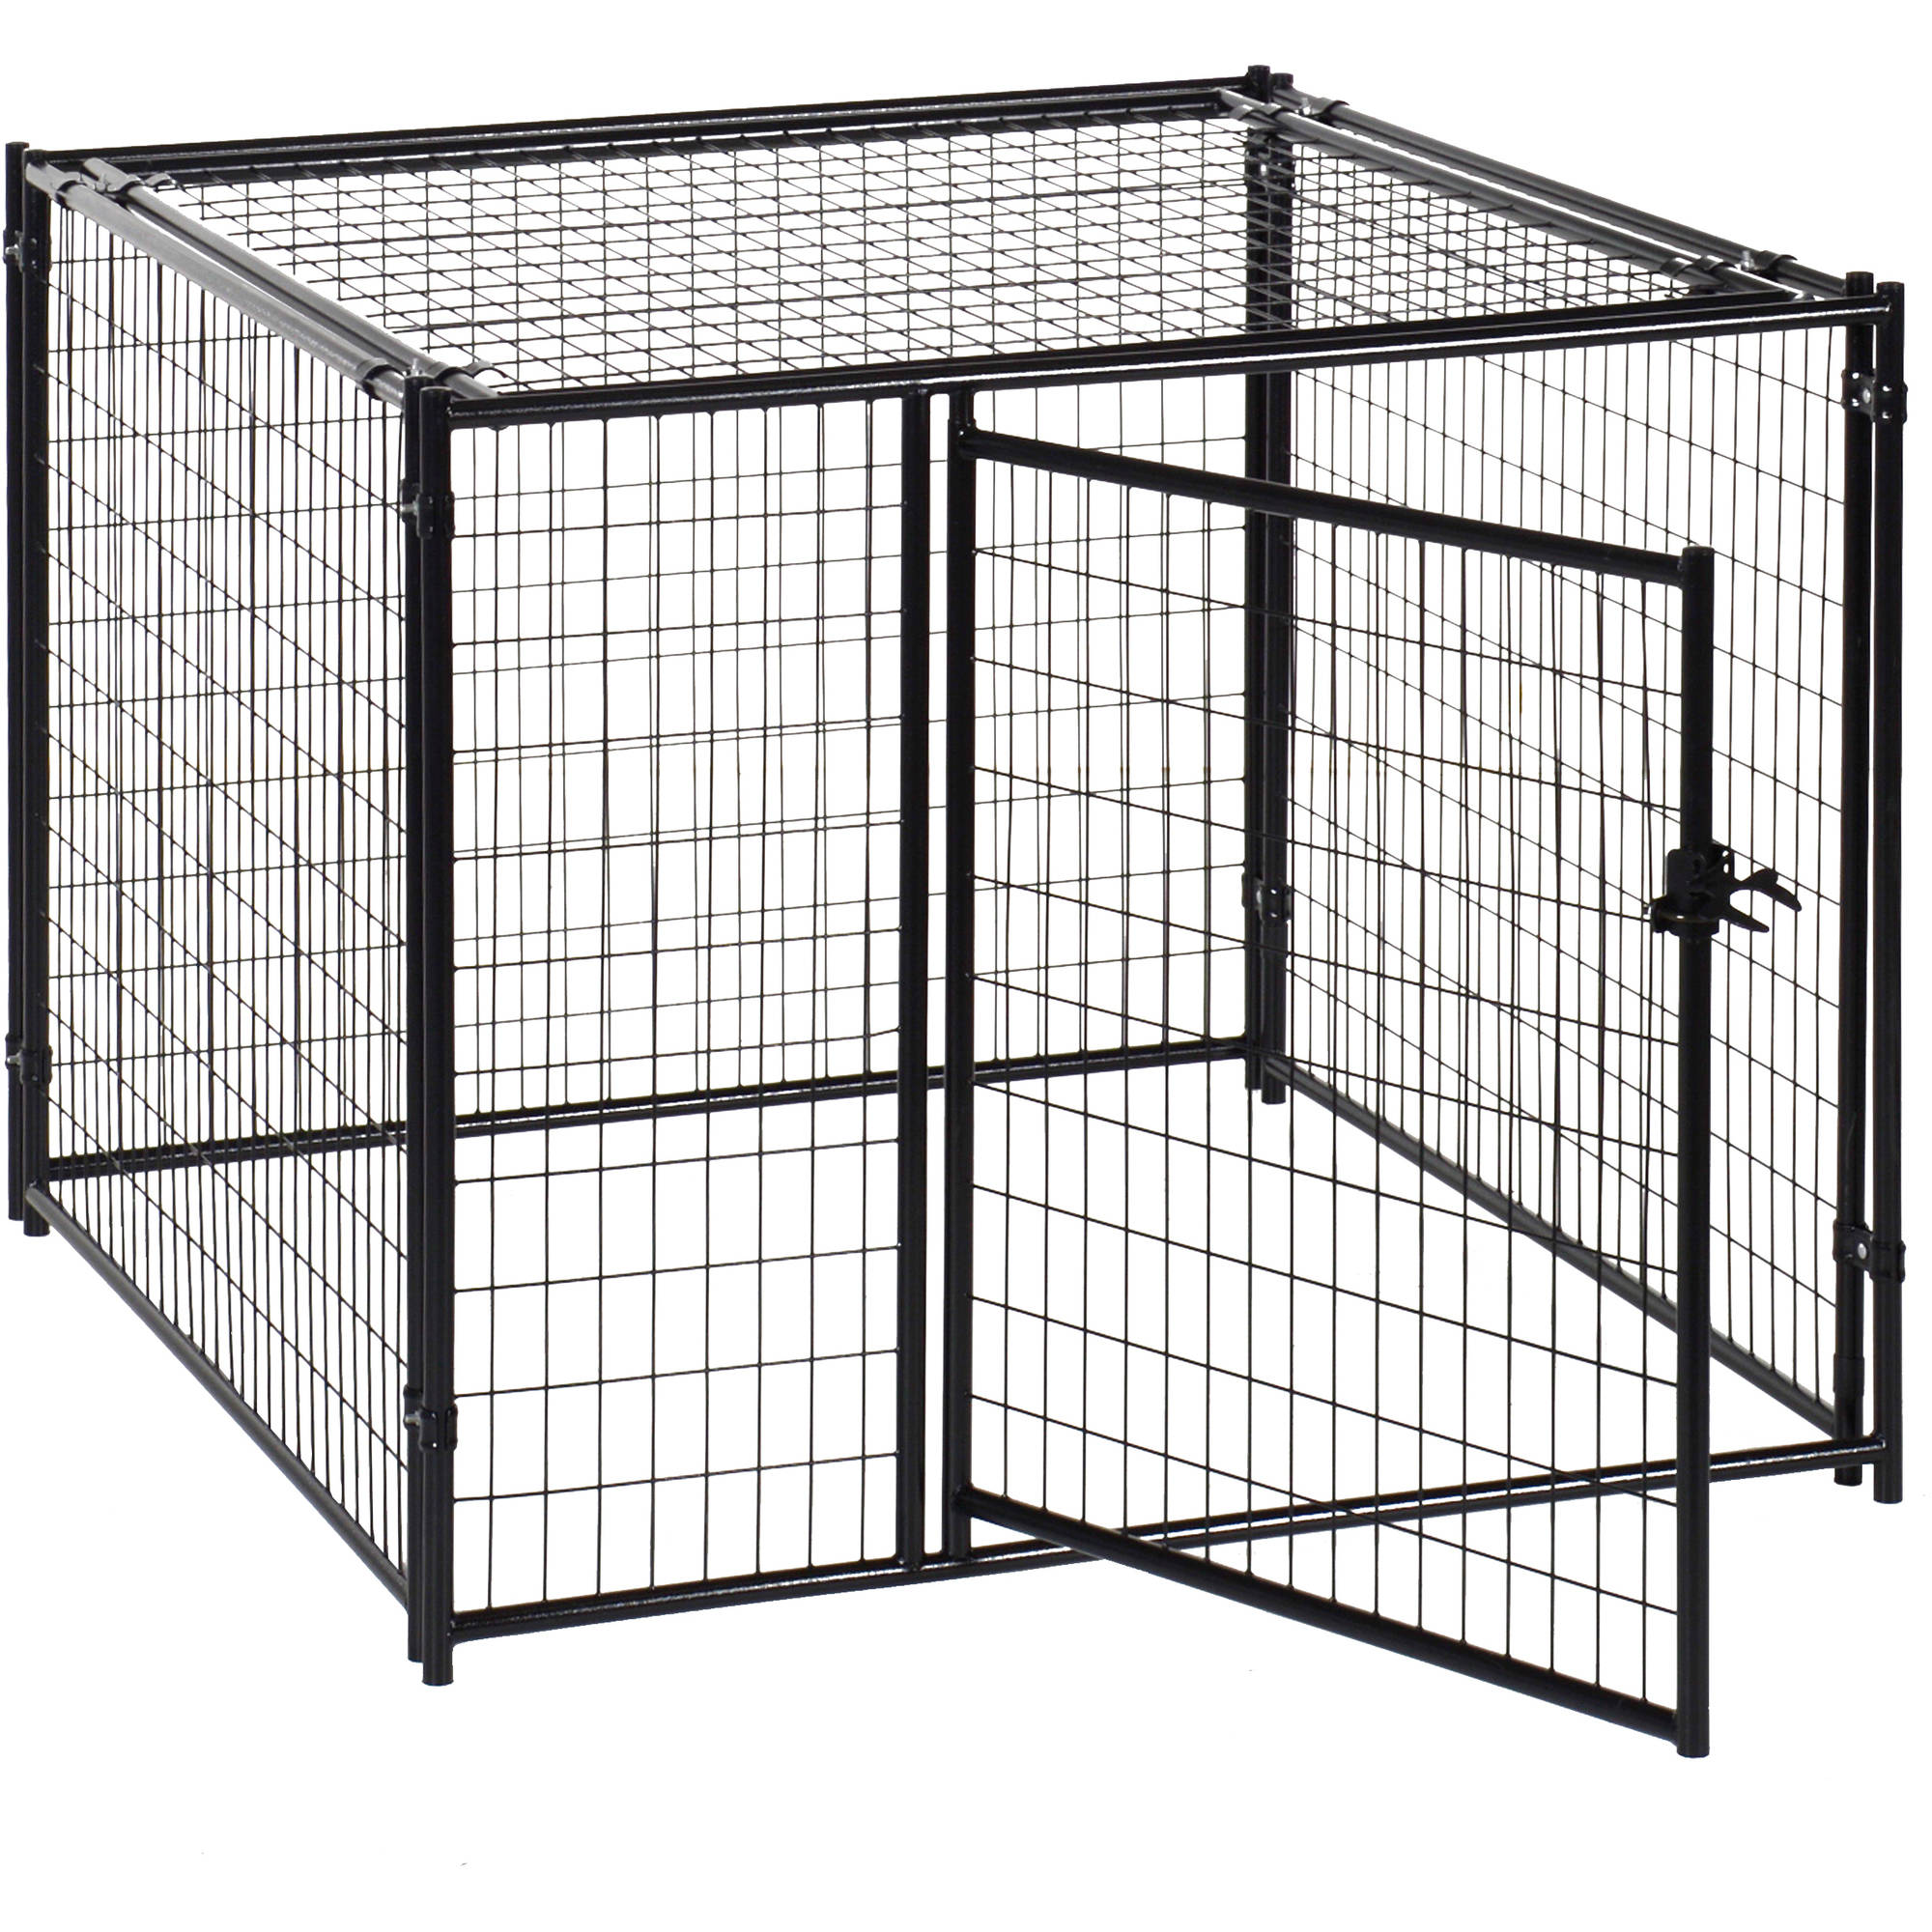 Lucky Dog 5'L x 5'W x 4'H with Pred Top Kennel